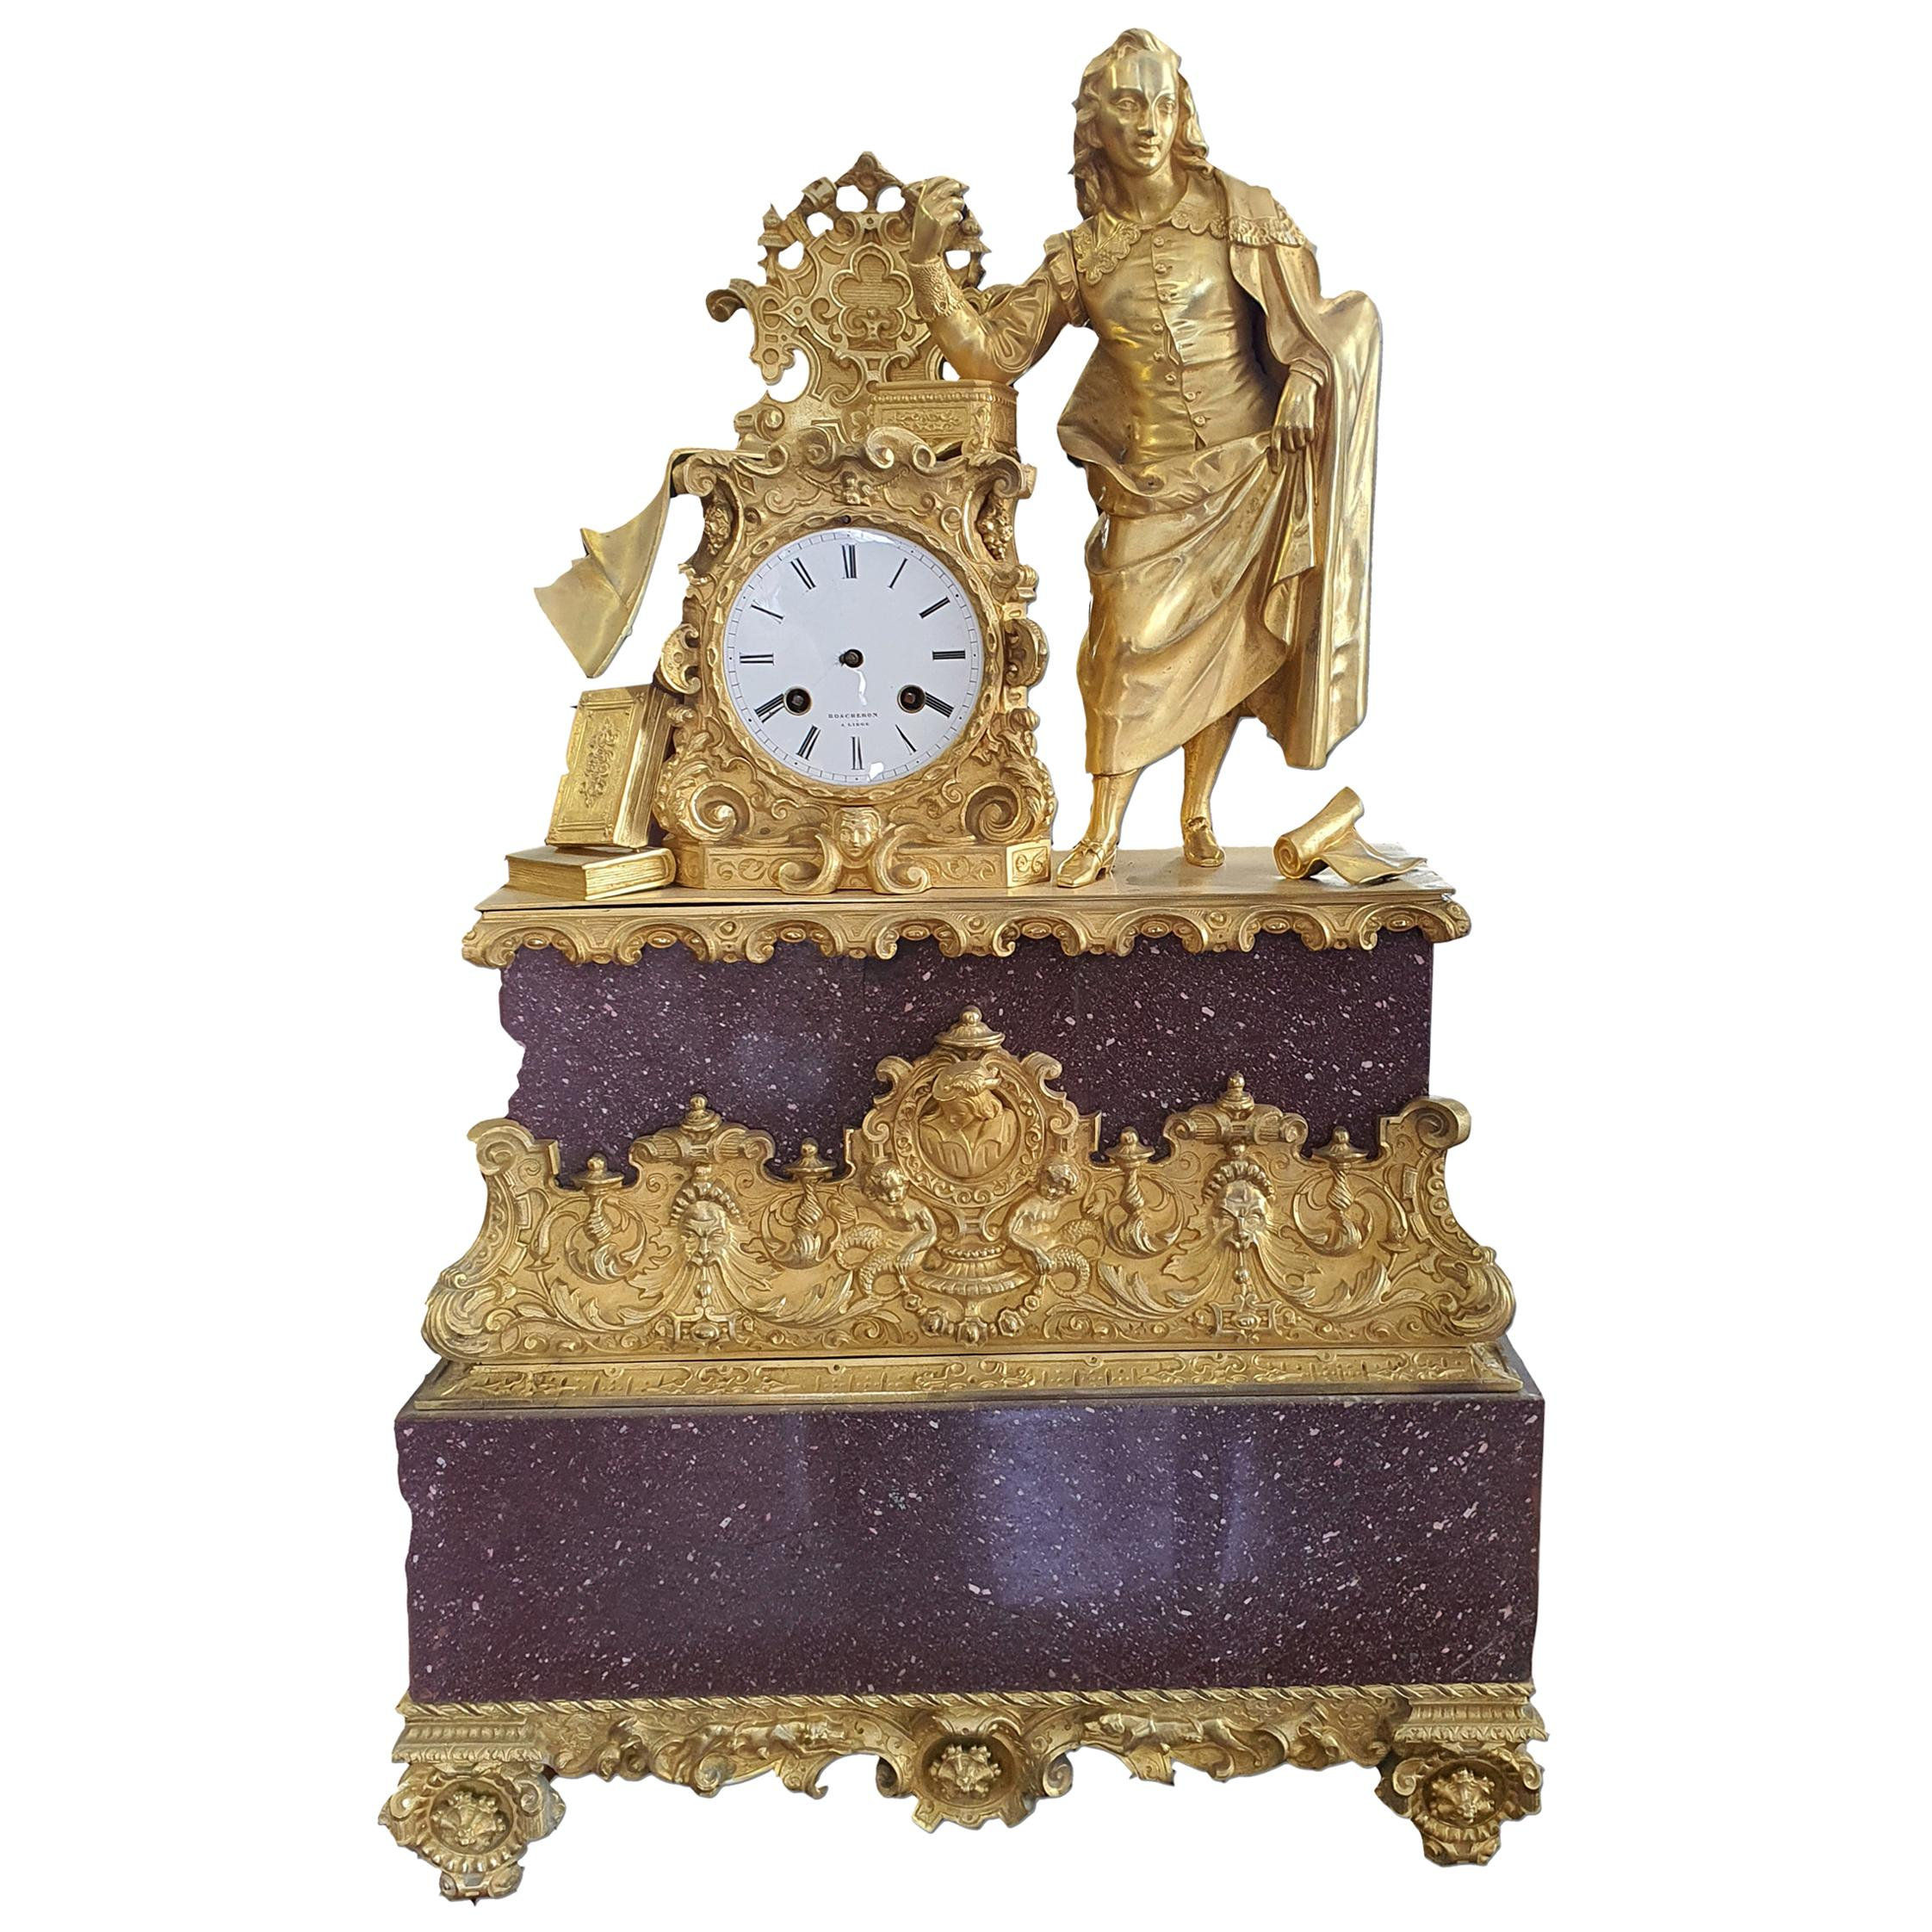 19th Century Porphyry and Gilded Bronzo Table Clock